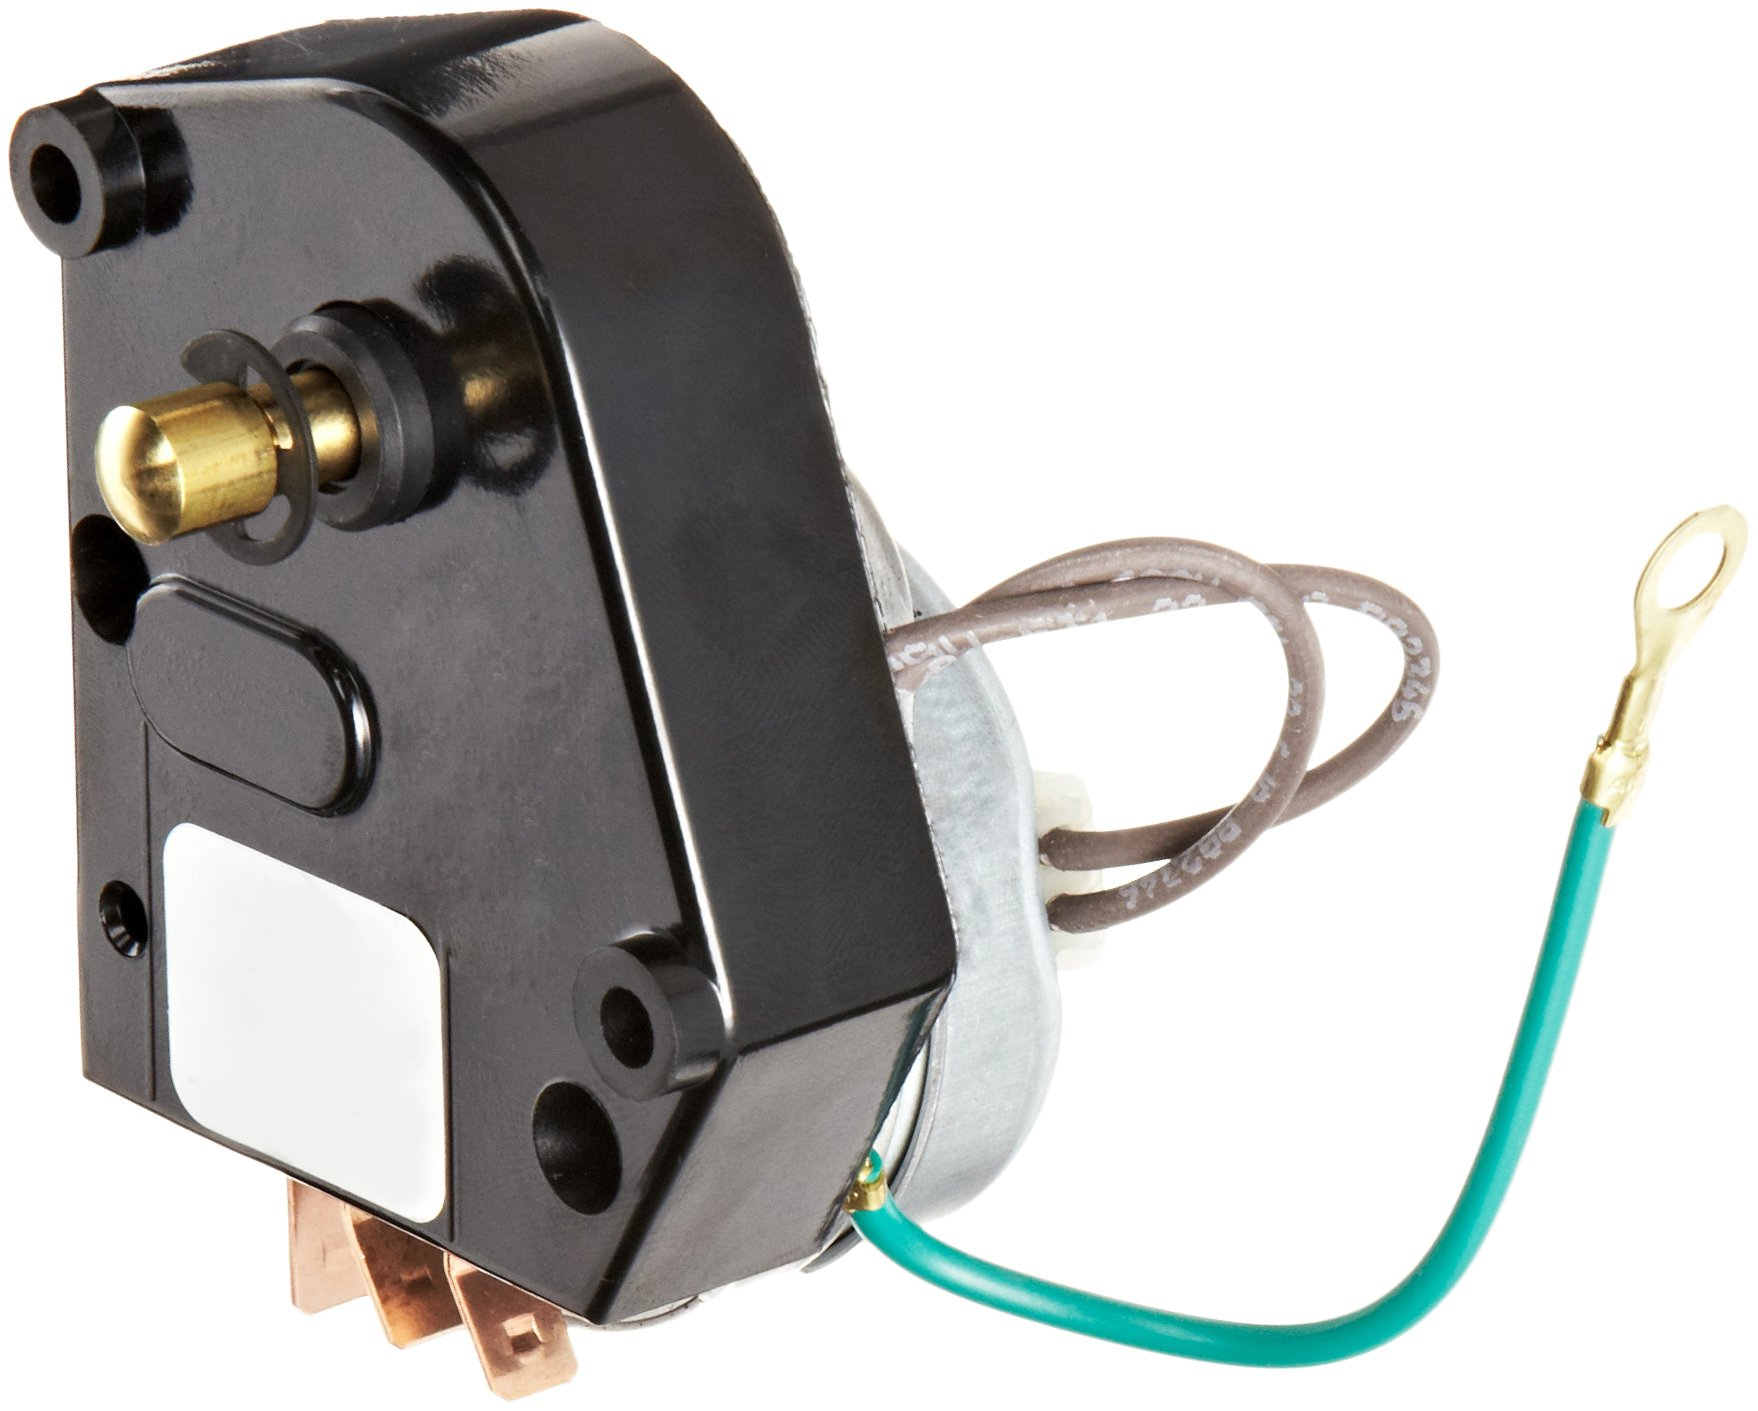 American Dryer DR224 Replacement Timer, 30 Seconds, 230V, for A80, DR30, DR35, DRC3, GB300, and SP3 Model Push Button Hand Dryers